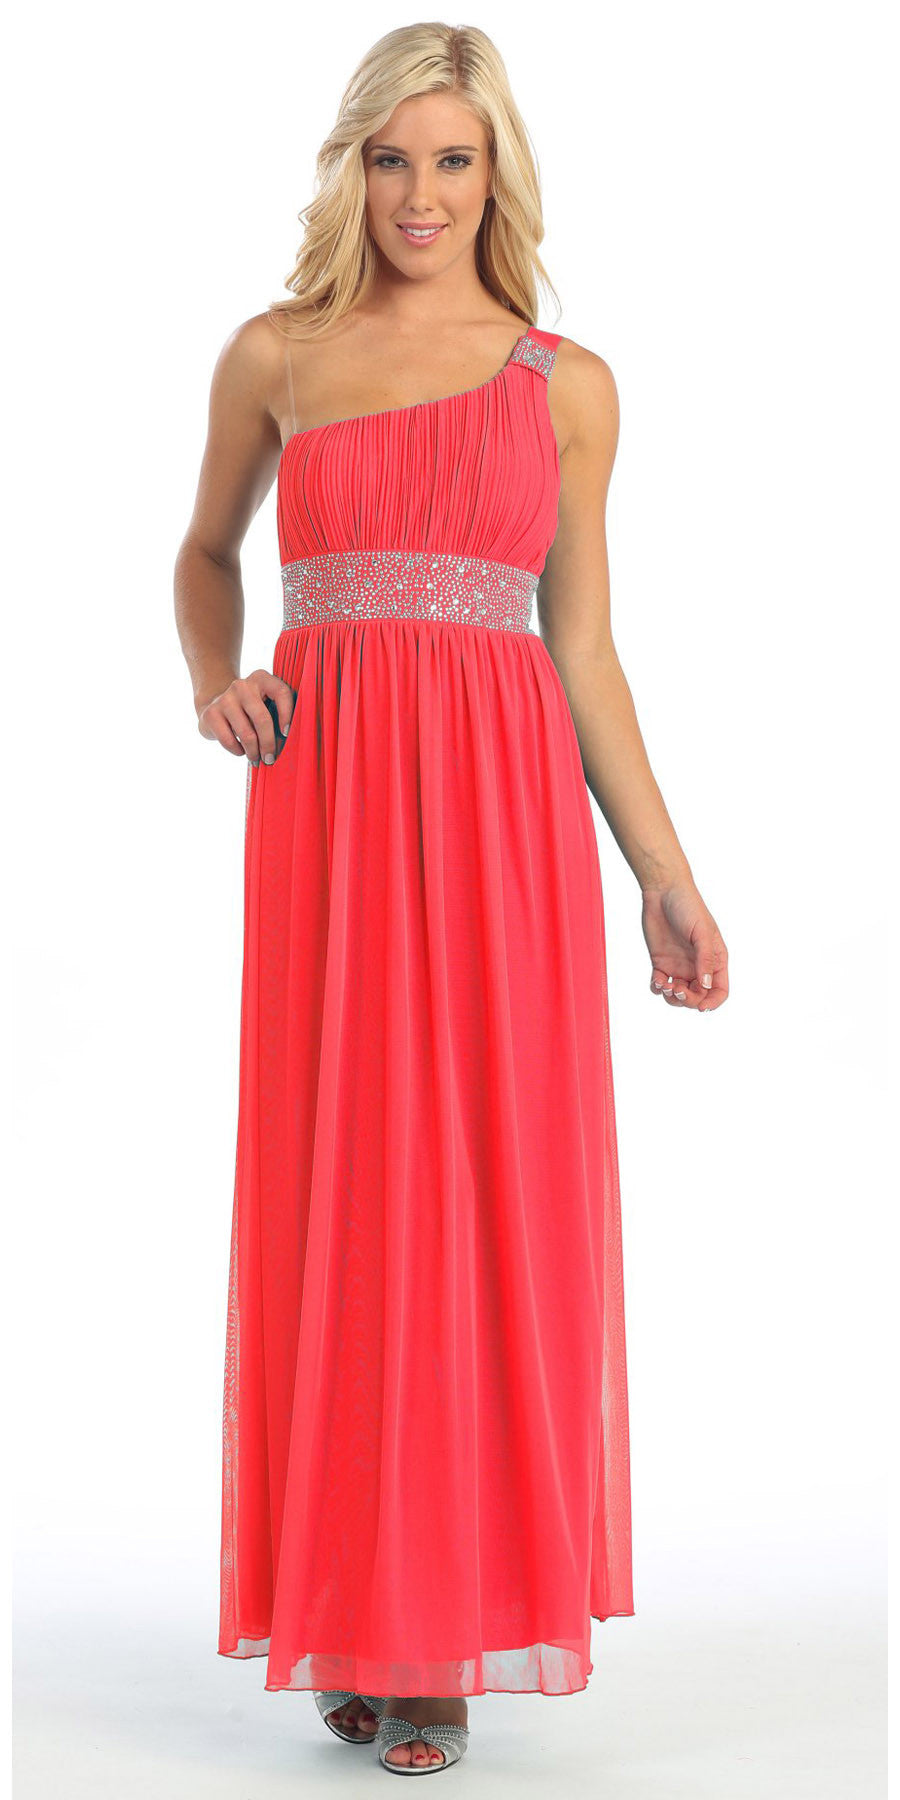 Long Coral One Shoulder Evening Gown Chiffon Empire Waist Rhinestone